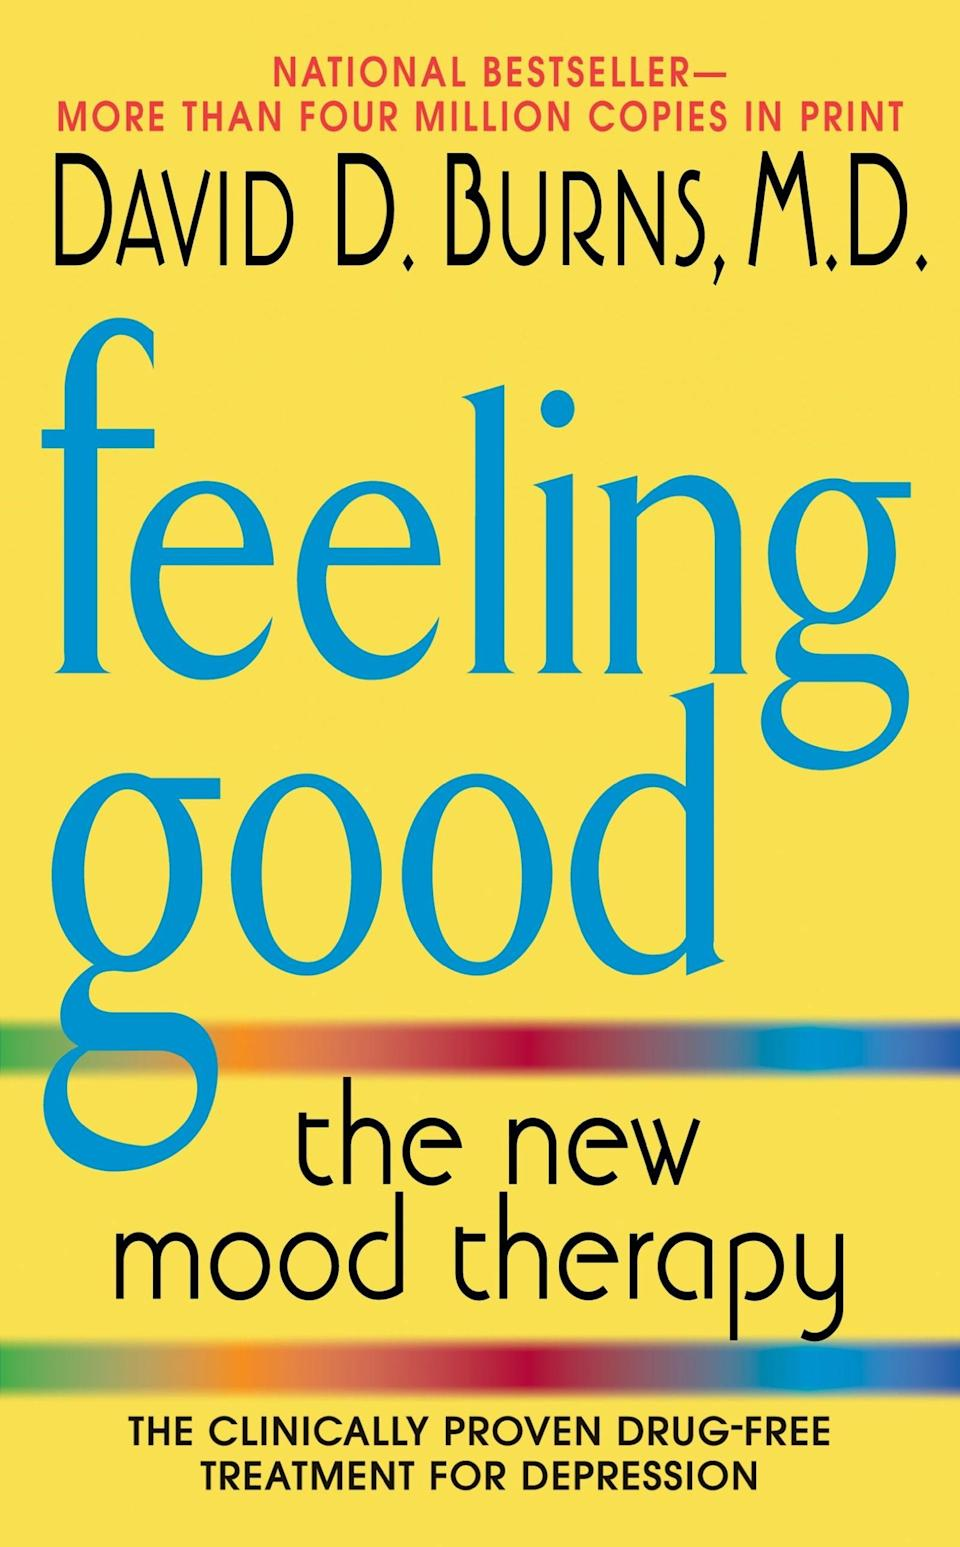 <p>Procrastination, guilt, anxiety, and low self-esteem can be cured by something other than drugs: In <span>Feeling Good</span>, David D. Burns, MD, outlines the strategies that will immediately boost your mood and transform your outlook for the better. </p>